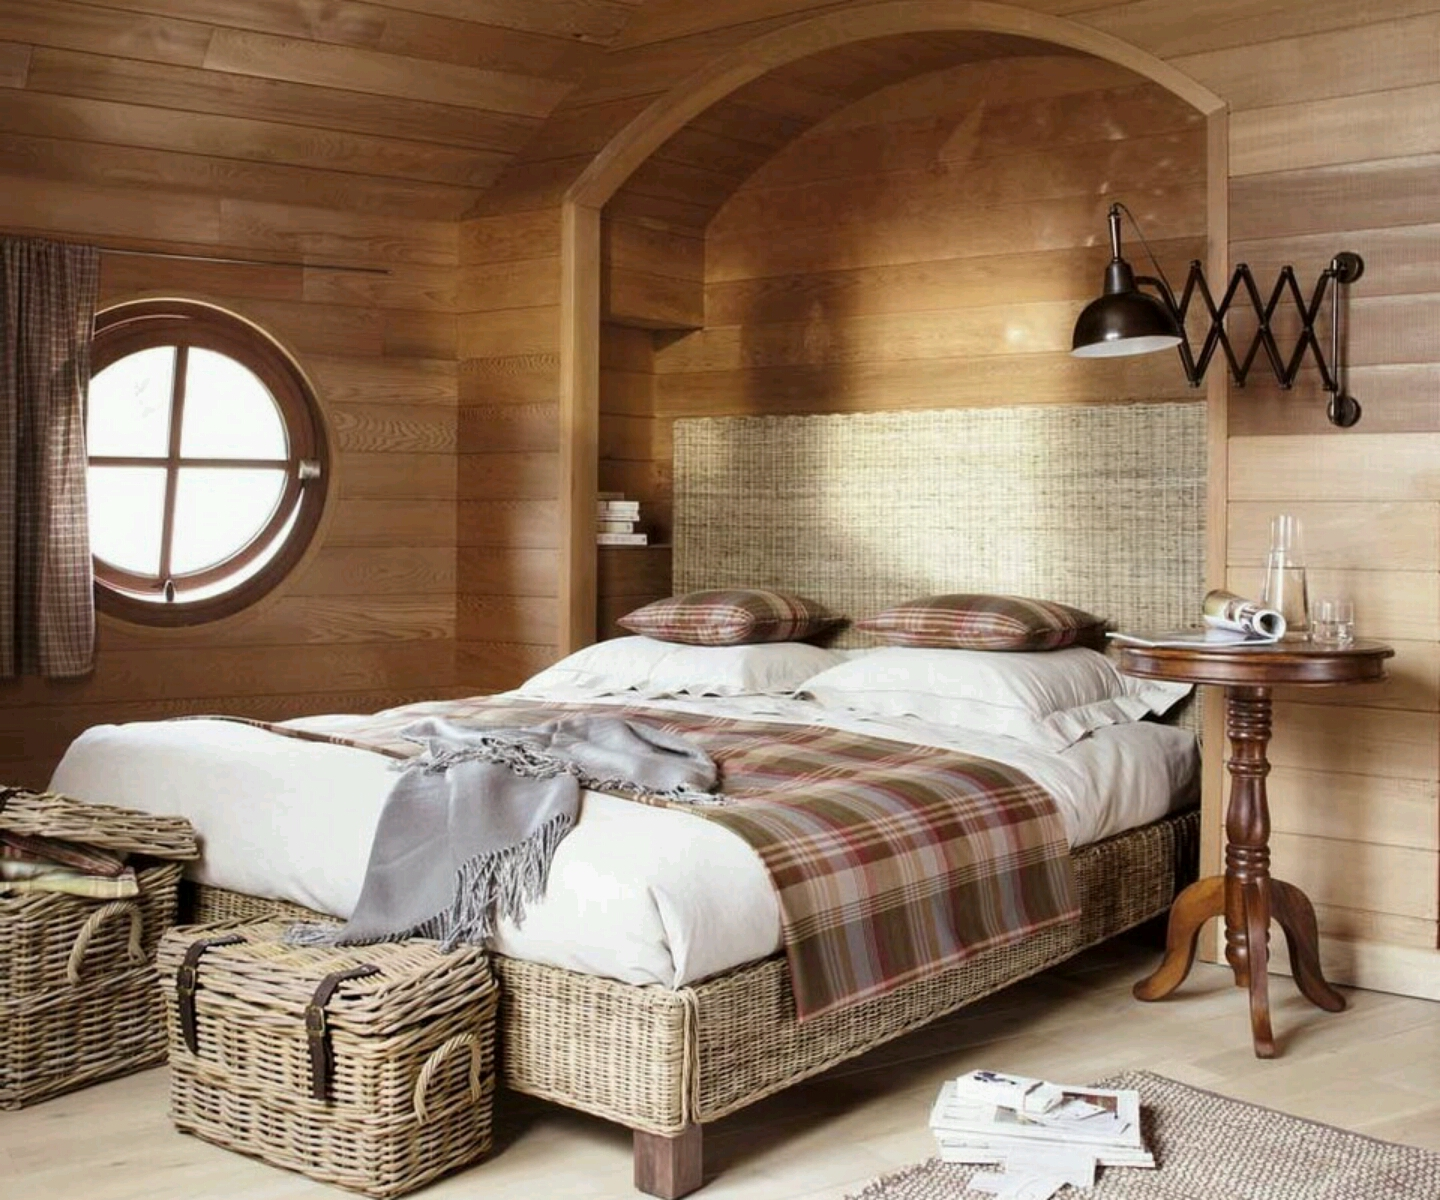 New home designs latest december 2012 for Interior designs for bedroom